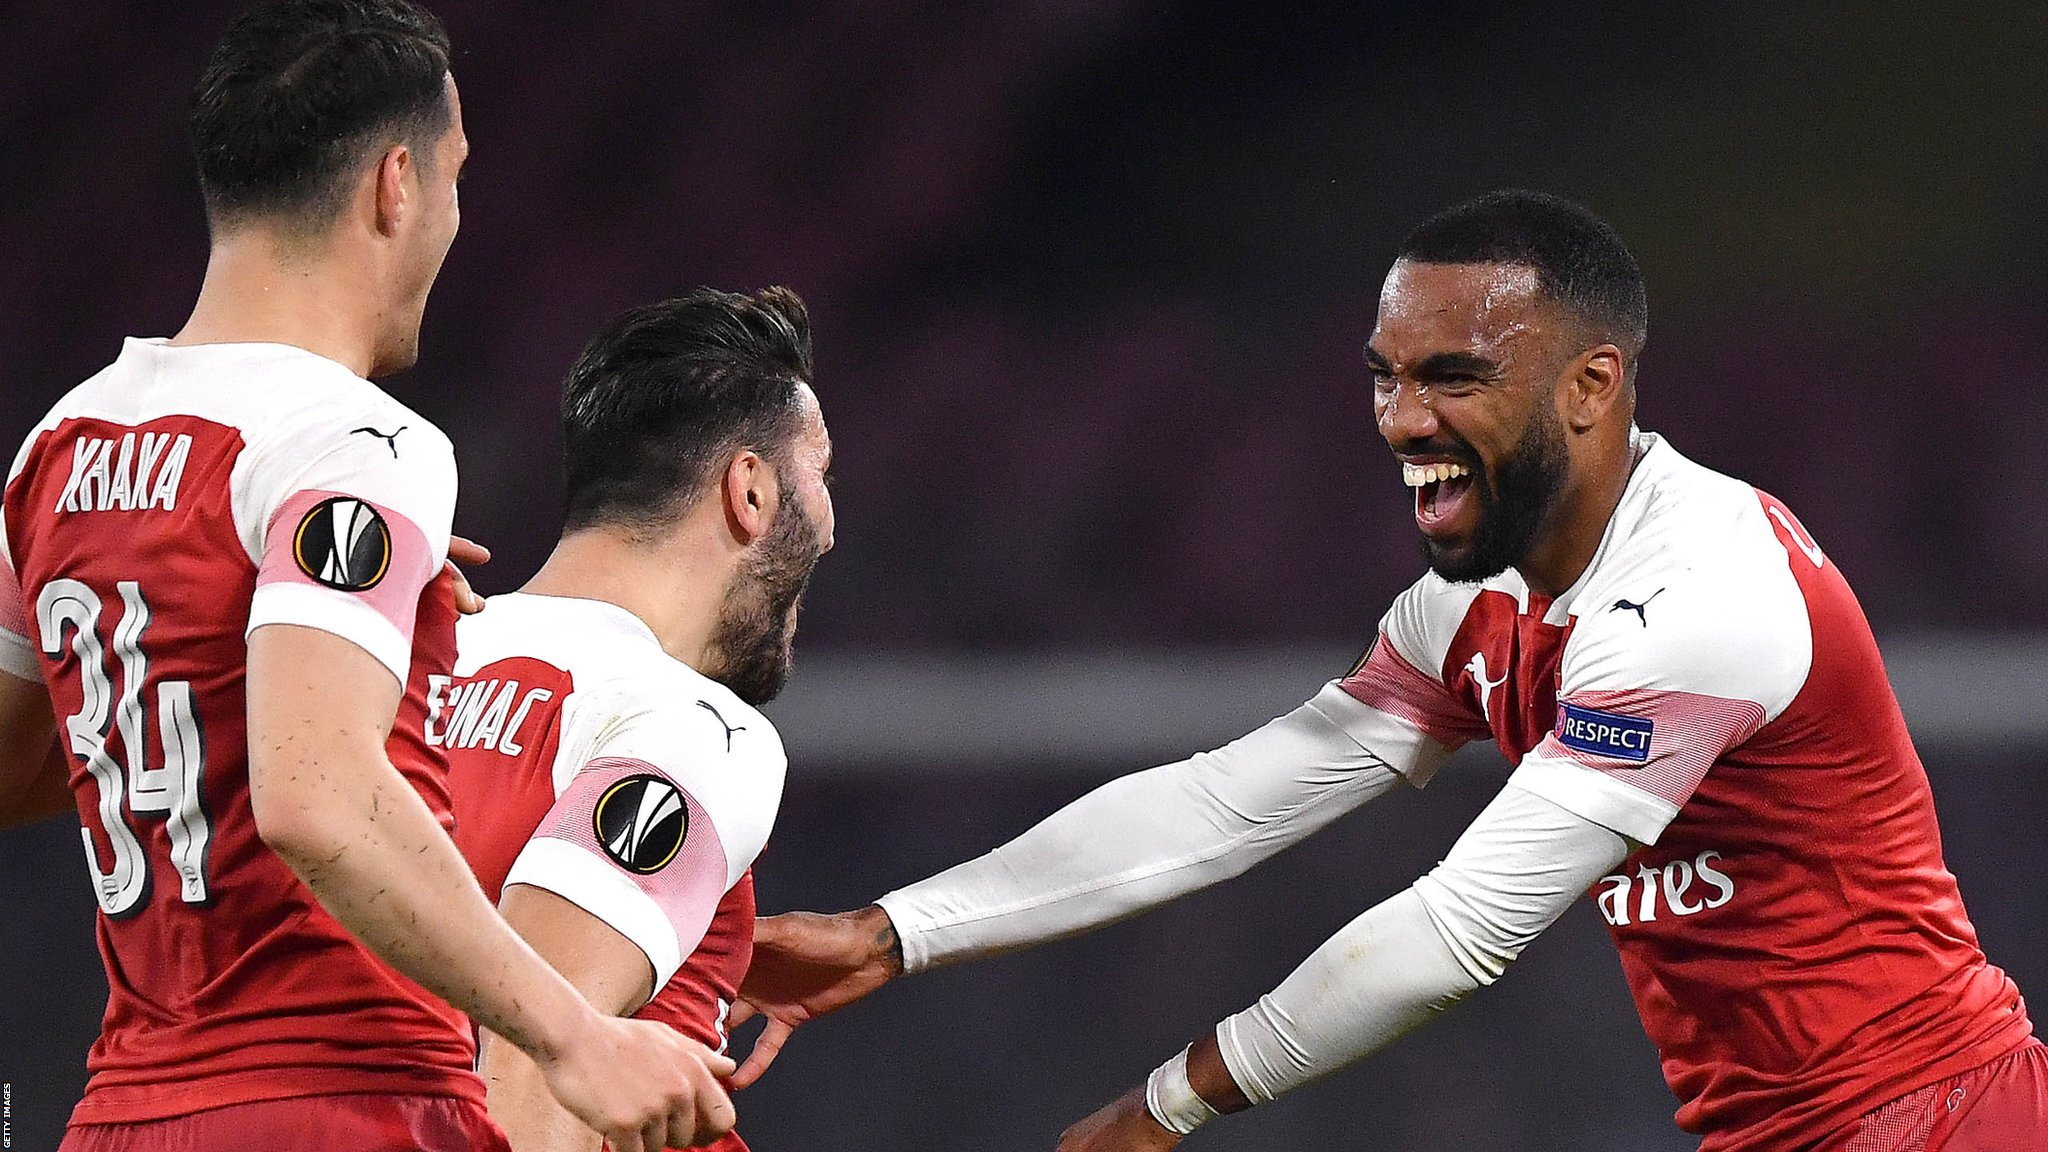 Arsenal 'make very difficult Napoli trip look easy' to reach Europa League last four